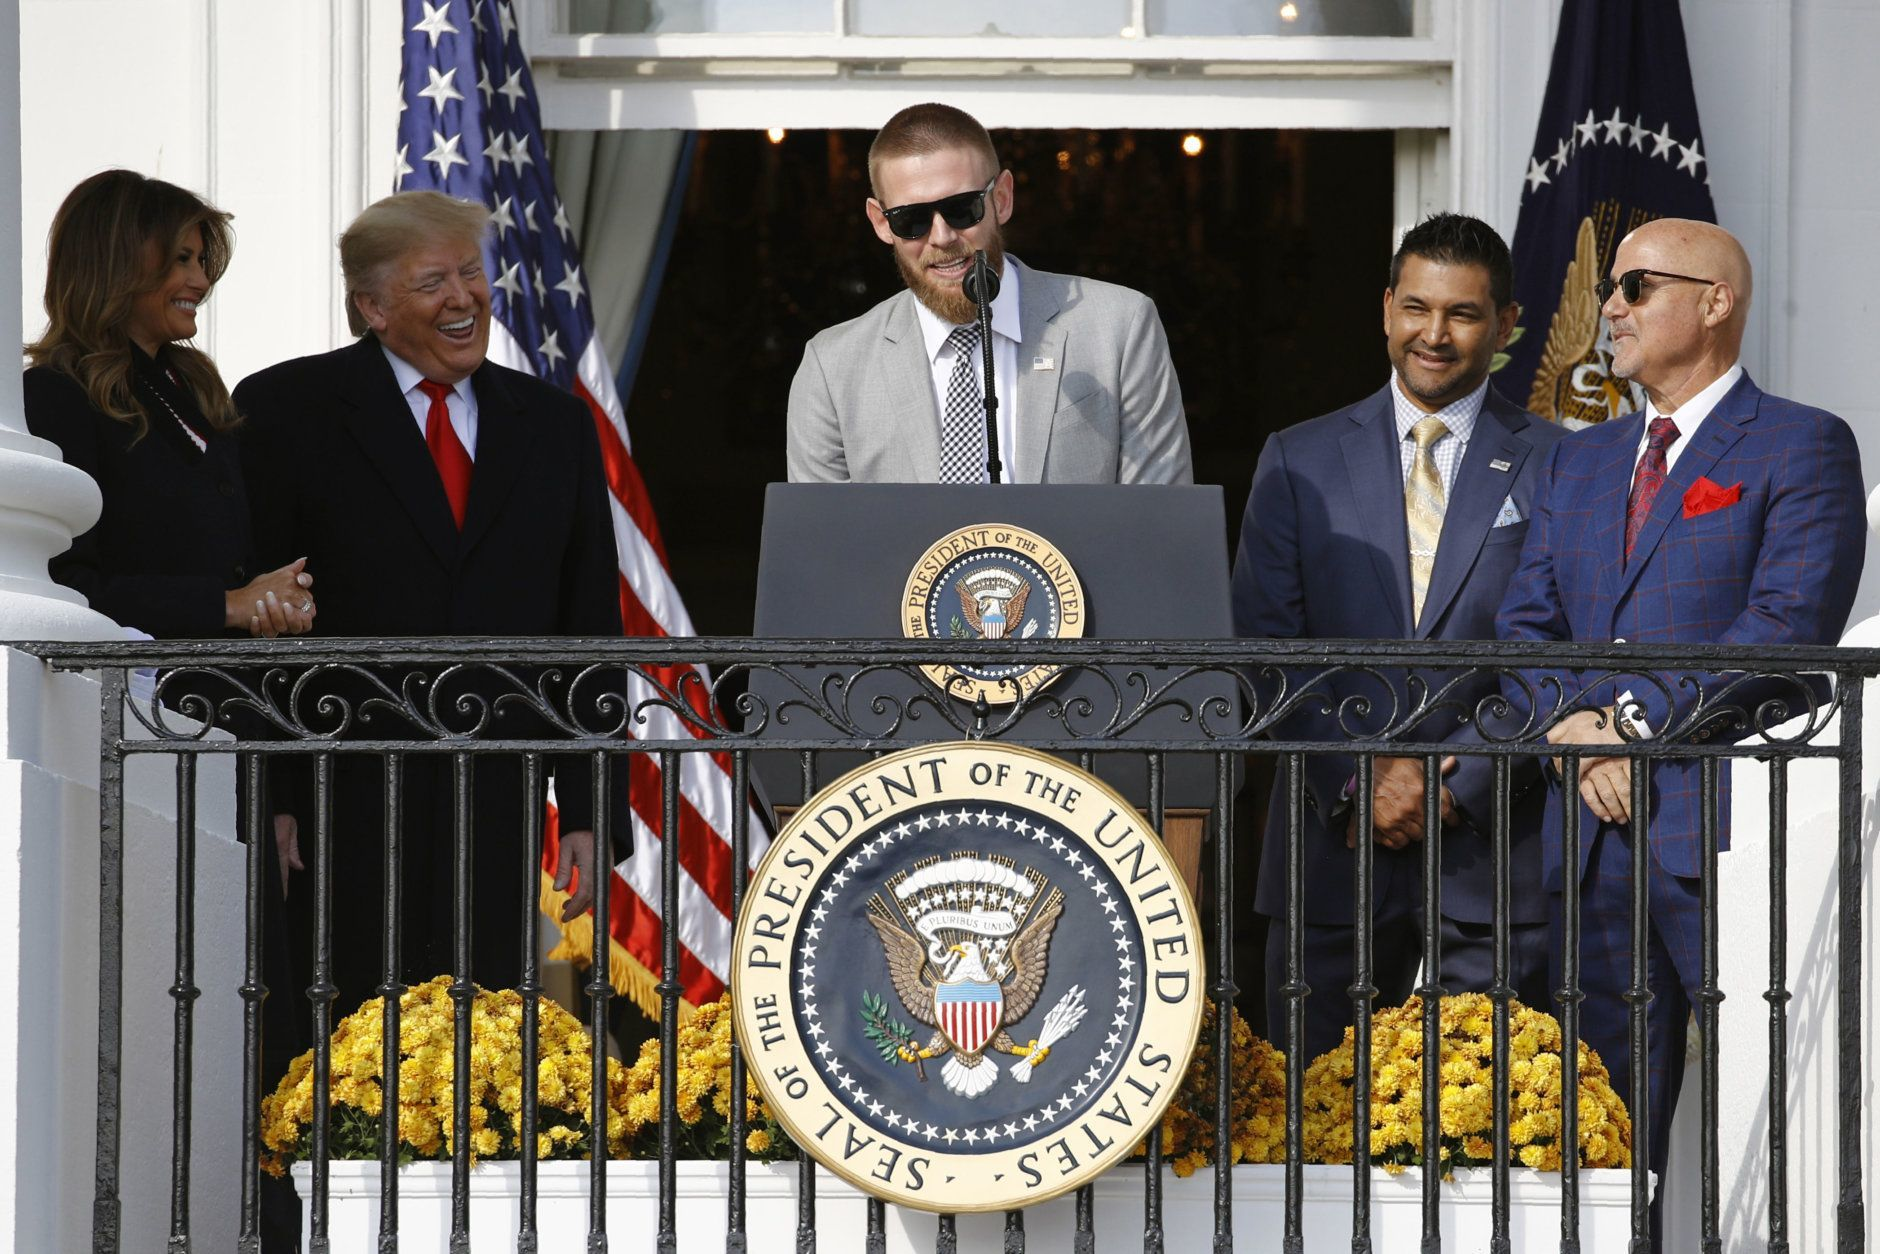 Washington Nationals starting pitcher Stephen Strasburg, center, speaks in front of first lady Melania Trump, from left, President Donald Trump, manager Dave Martinez and general manager Mike Rizzo during an event to honor the 2019 World Series champion Nationals baseball team at the White House, Monday, Nov. 4, 2019, in Washington. (AP Photo/Patrick Semansky)